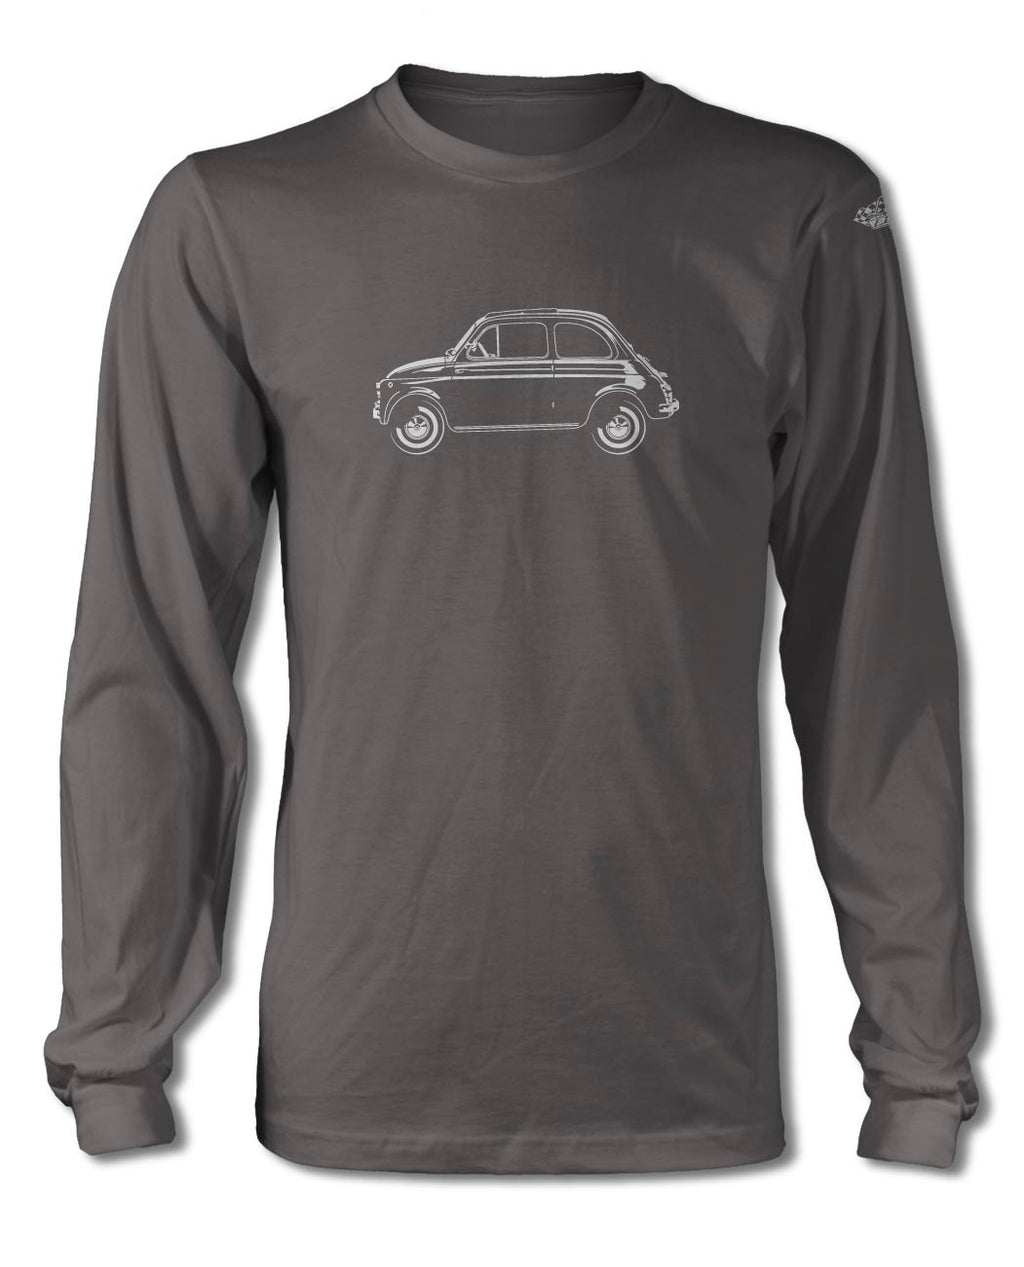 Fiat 500 T-Shirt - Long Sleeves - Side View